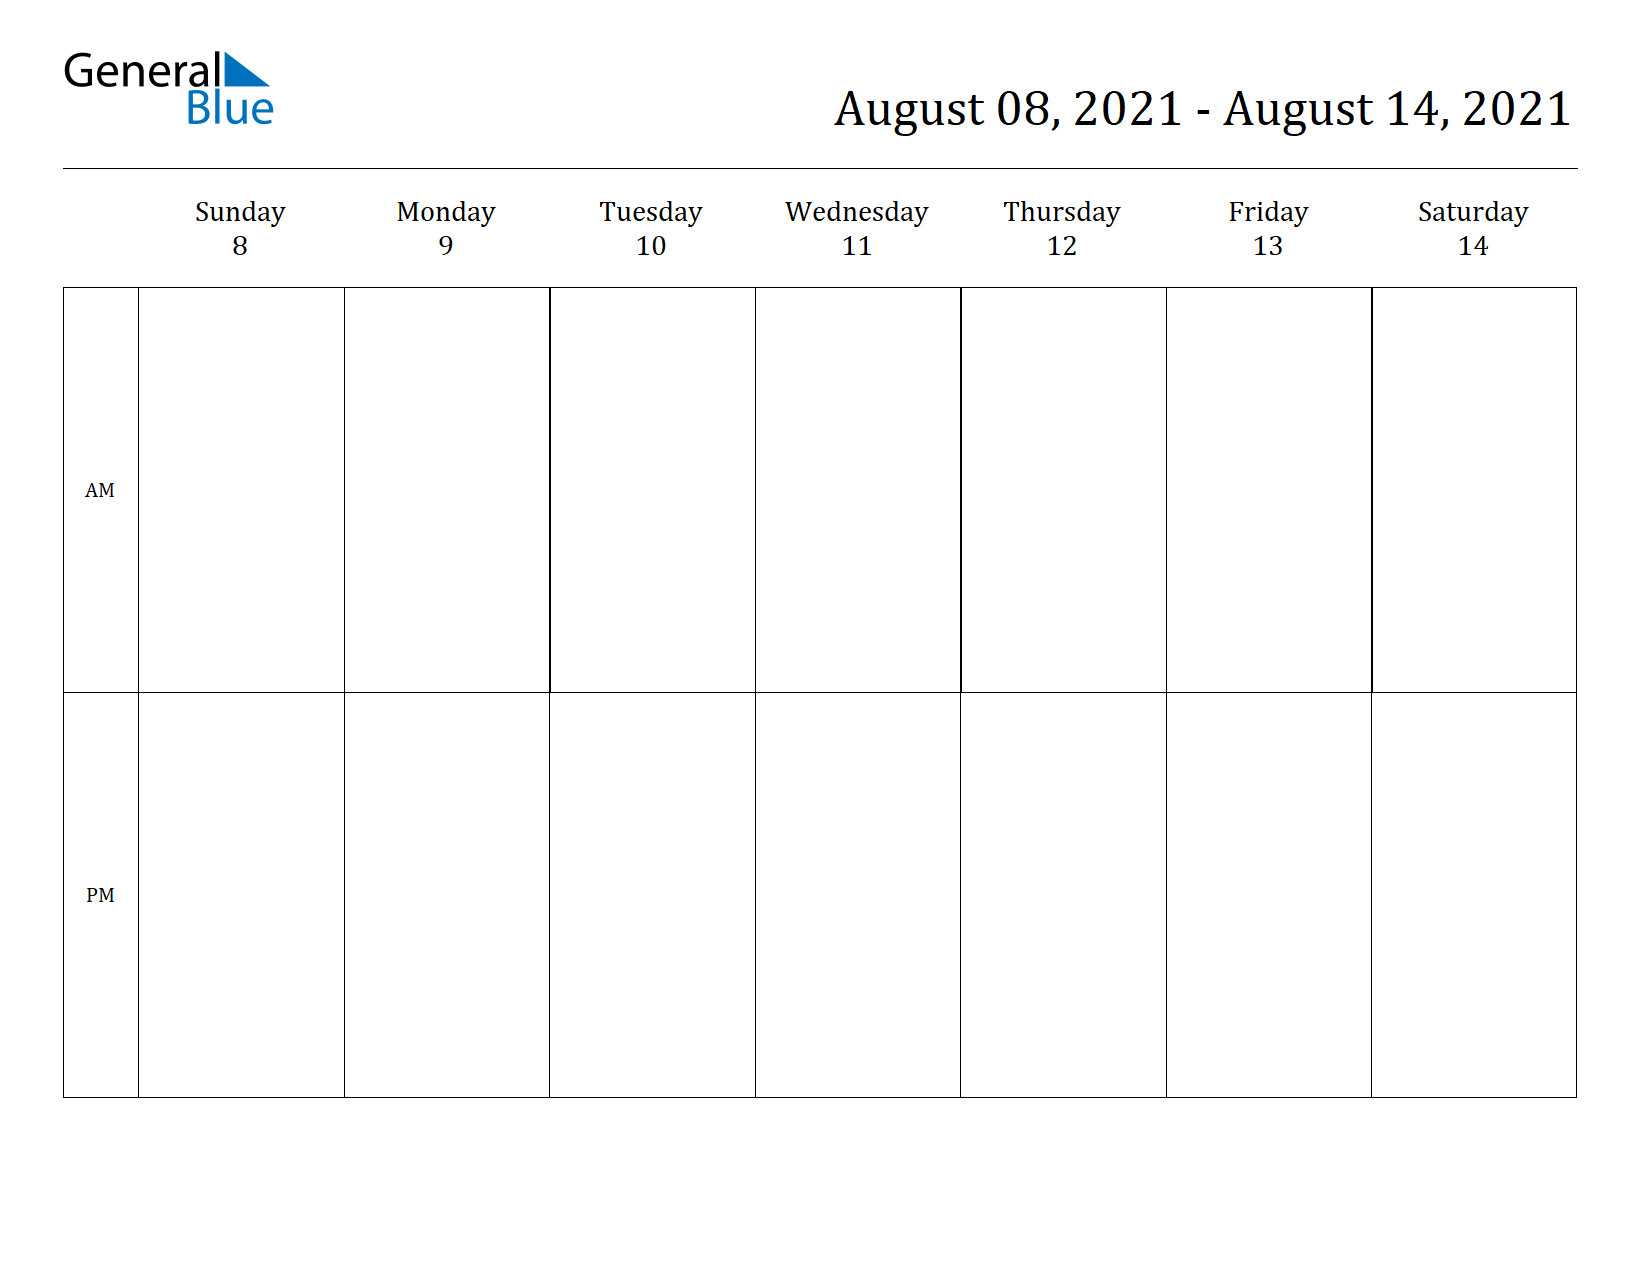 Weekly Calendar for Aug 08, 2021 to Aug 14, 2021